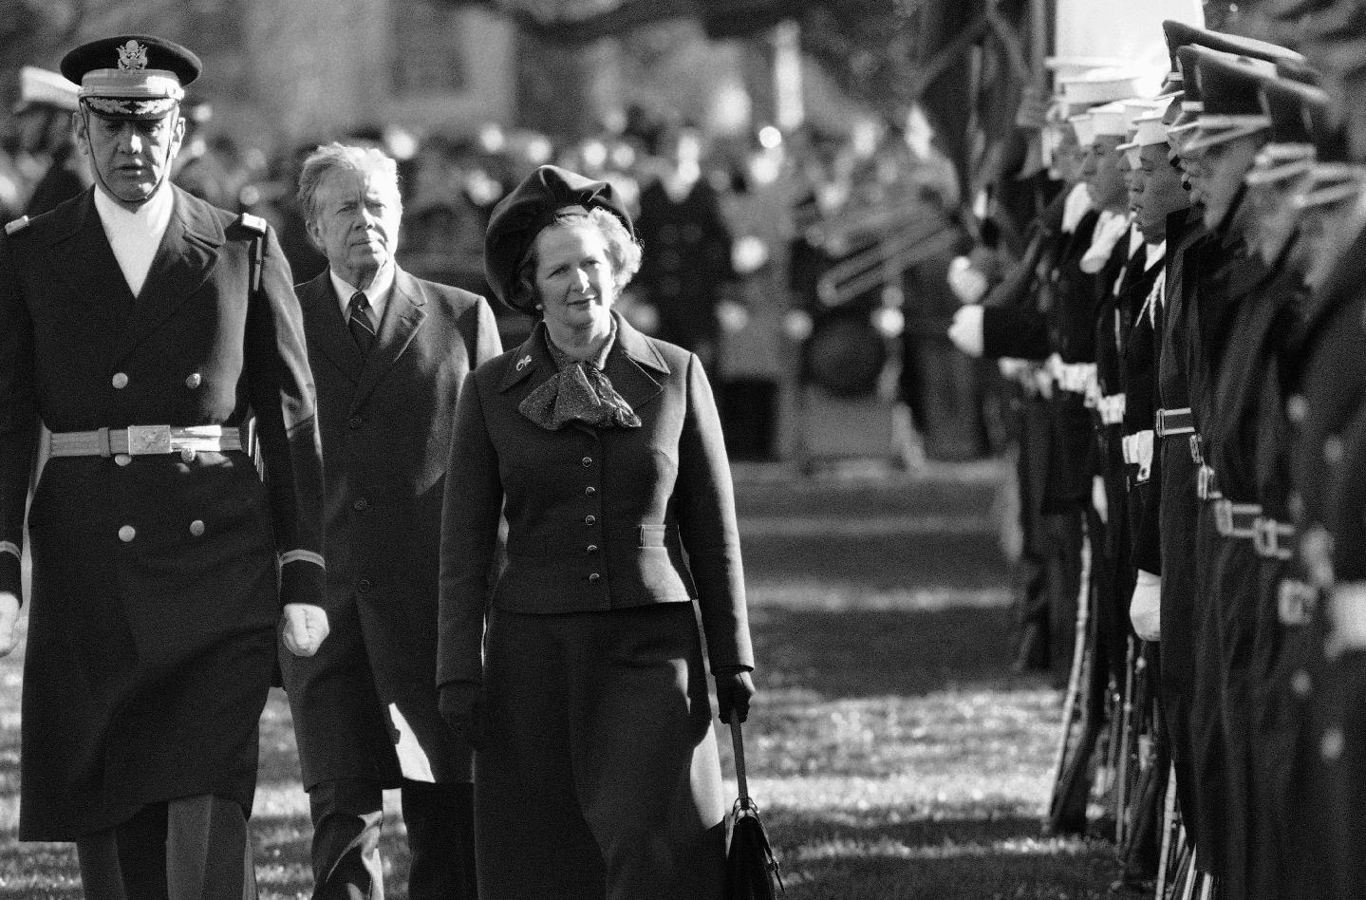 British Prime Minister Margaret Thatcher reviews the honor guard at the White House